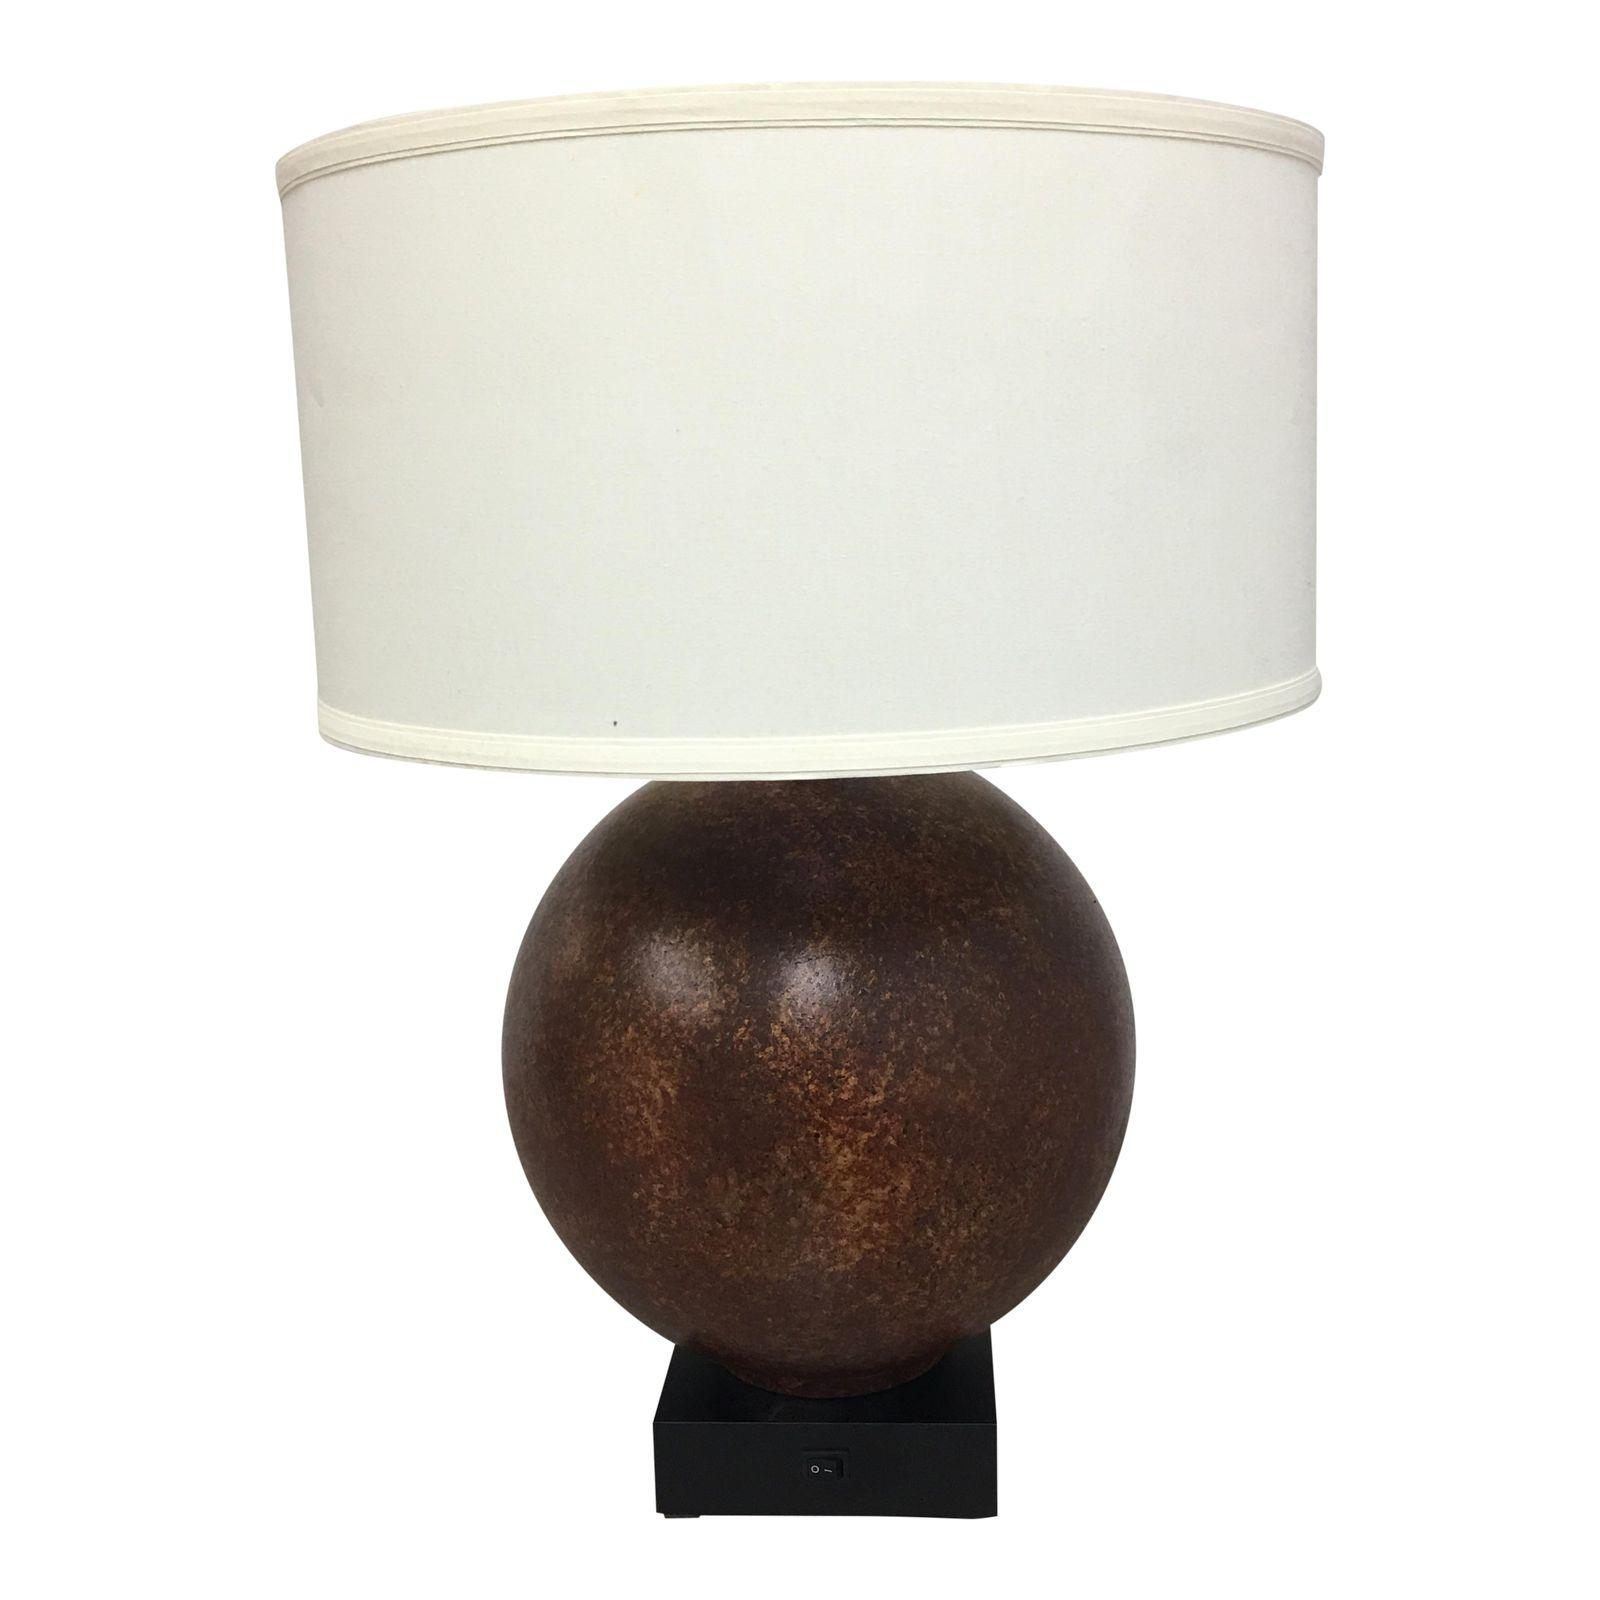 Contemporary Round Base Table Lamp Design Plus Gallery